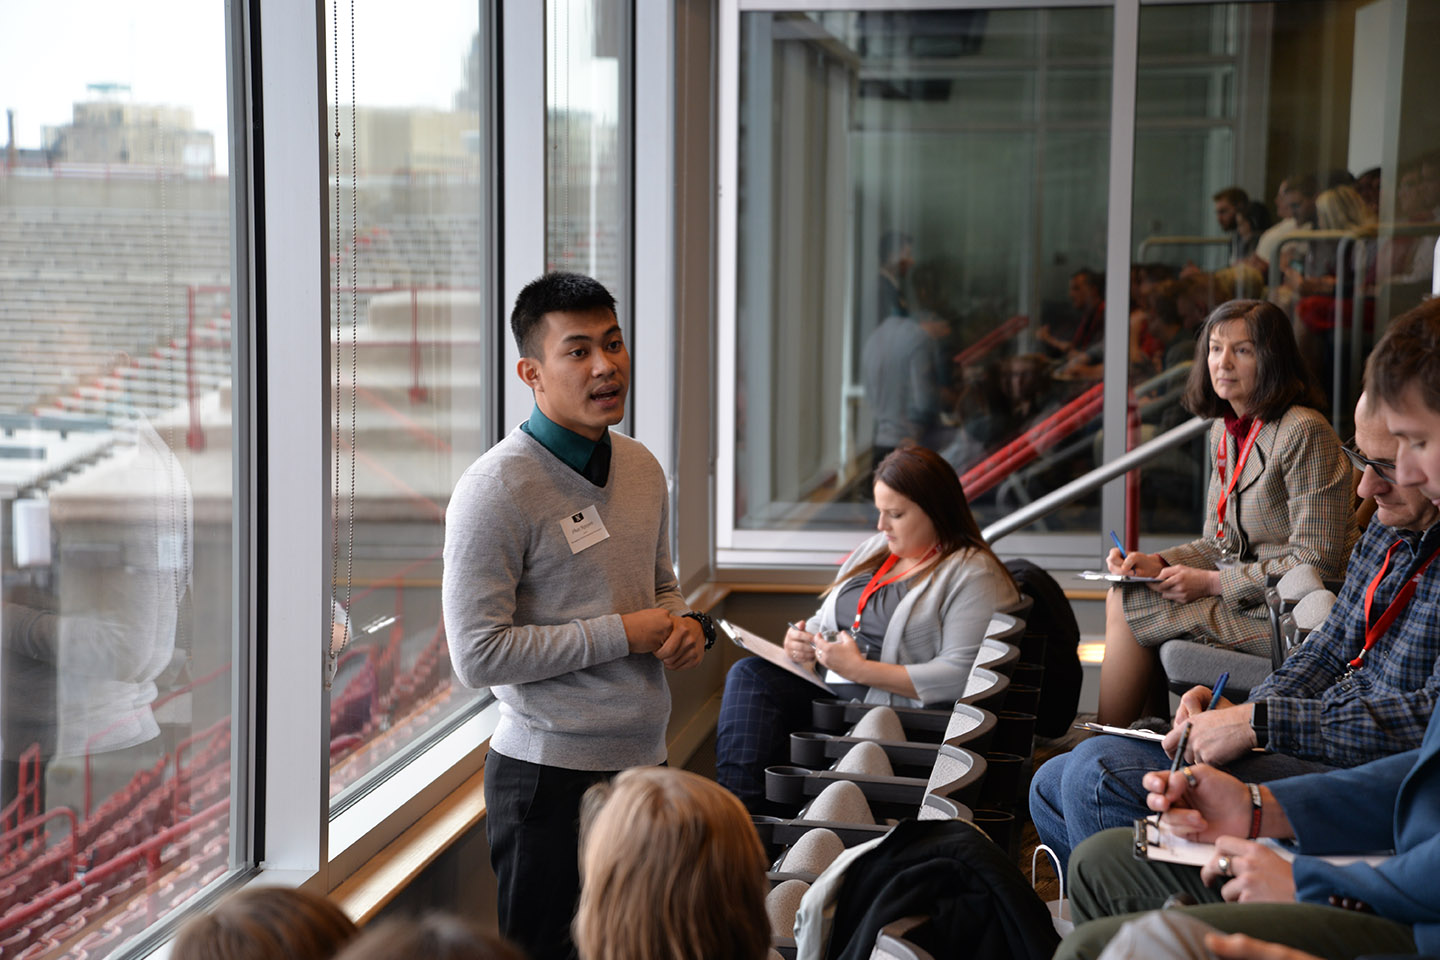 Nguyen Uses Strengths in Commitment to Help Others